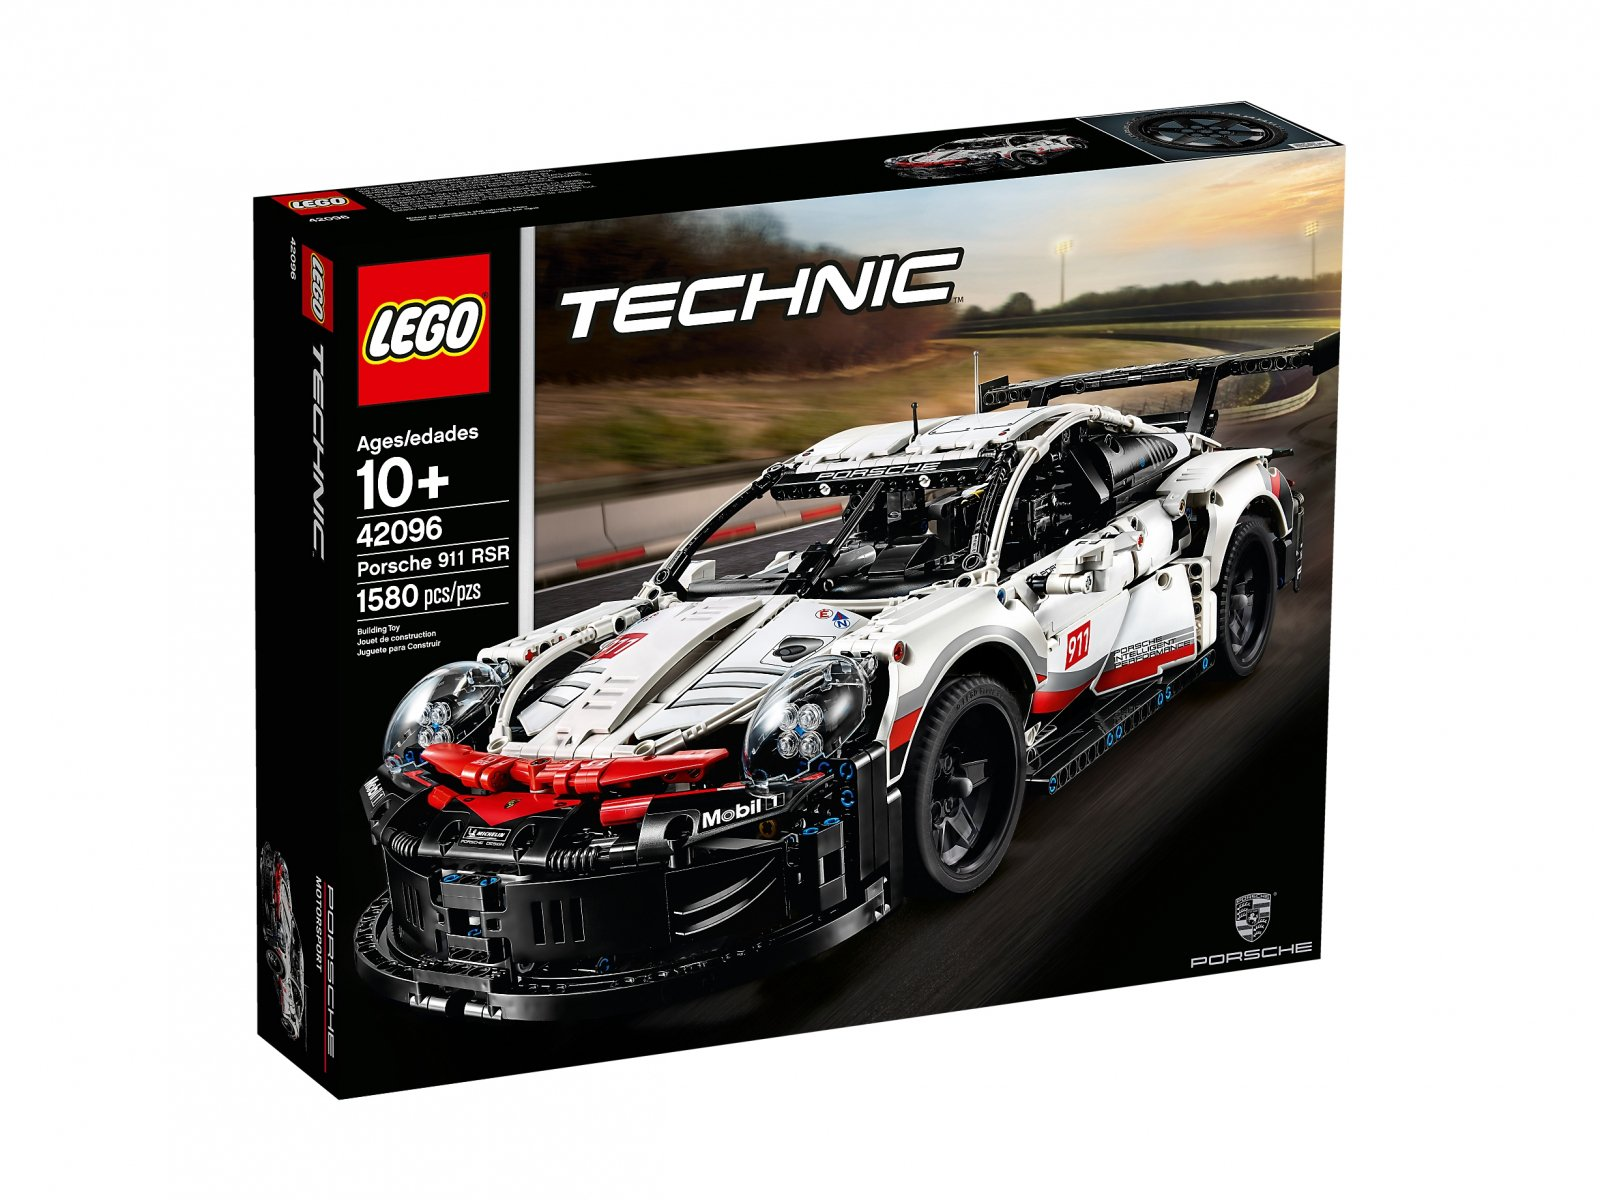 42096 lego technic porsche 911 rsr. Black Bedroom Furniture Sets. Home Design Ideas